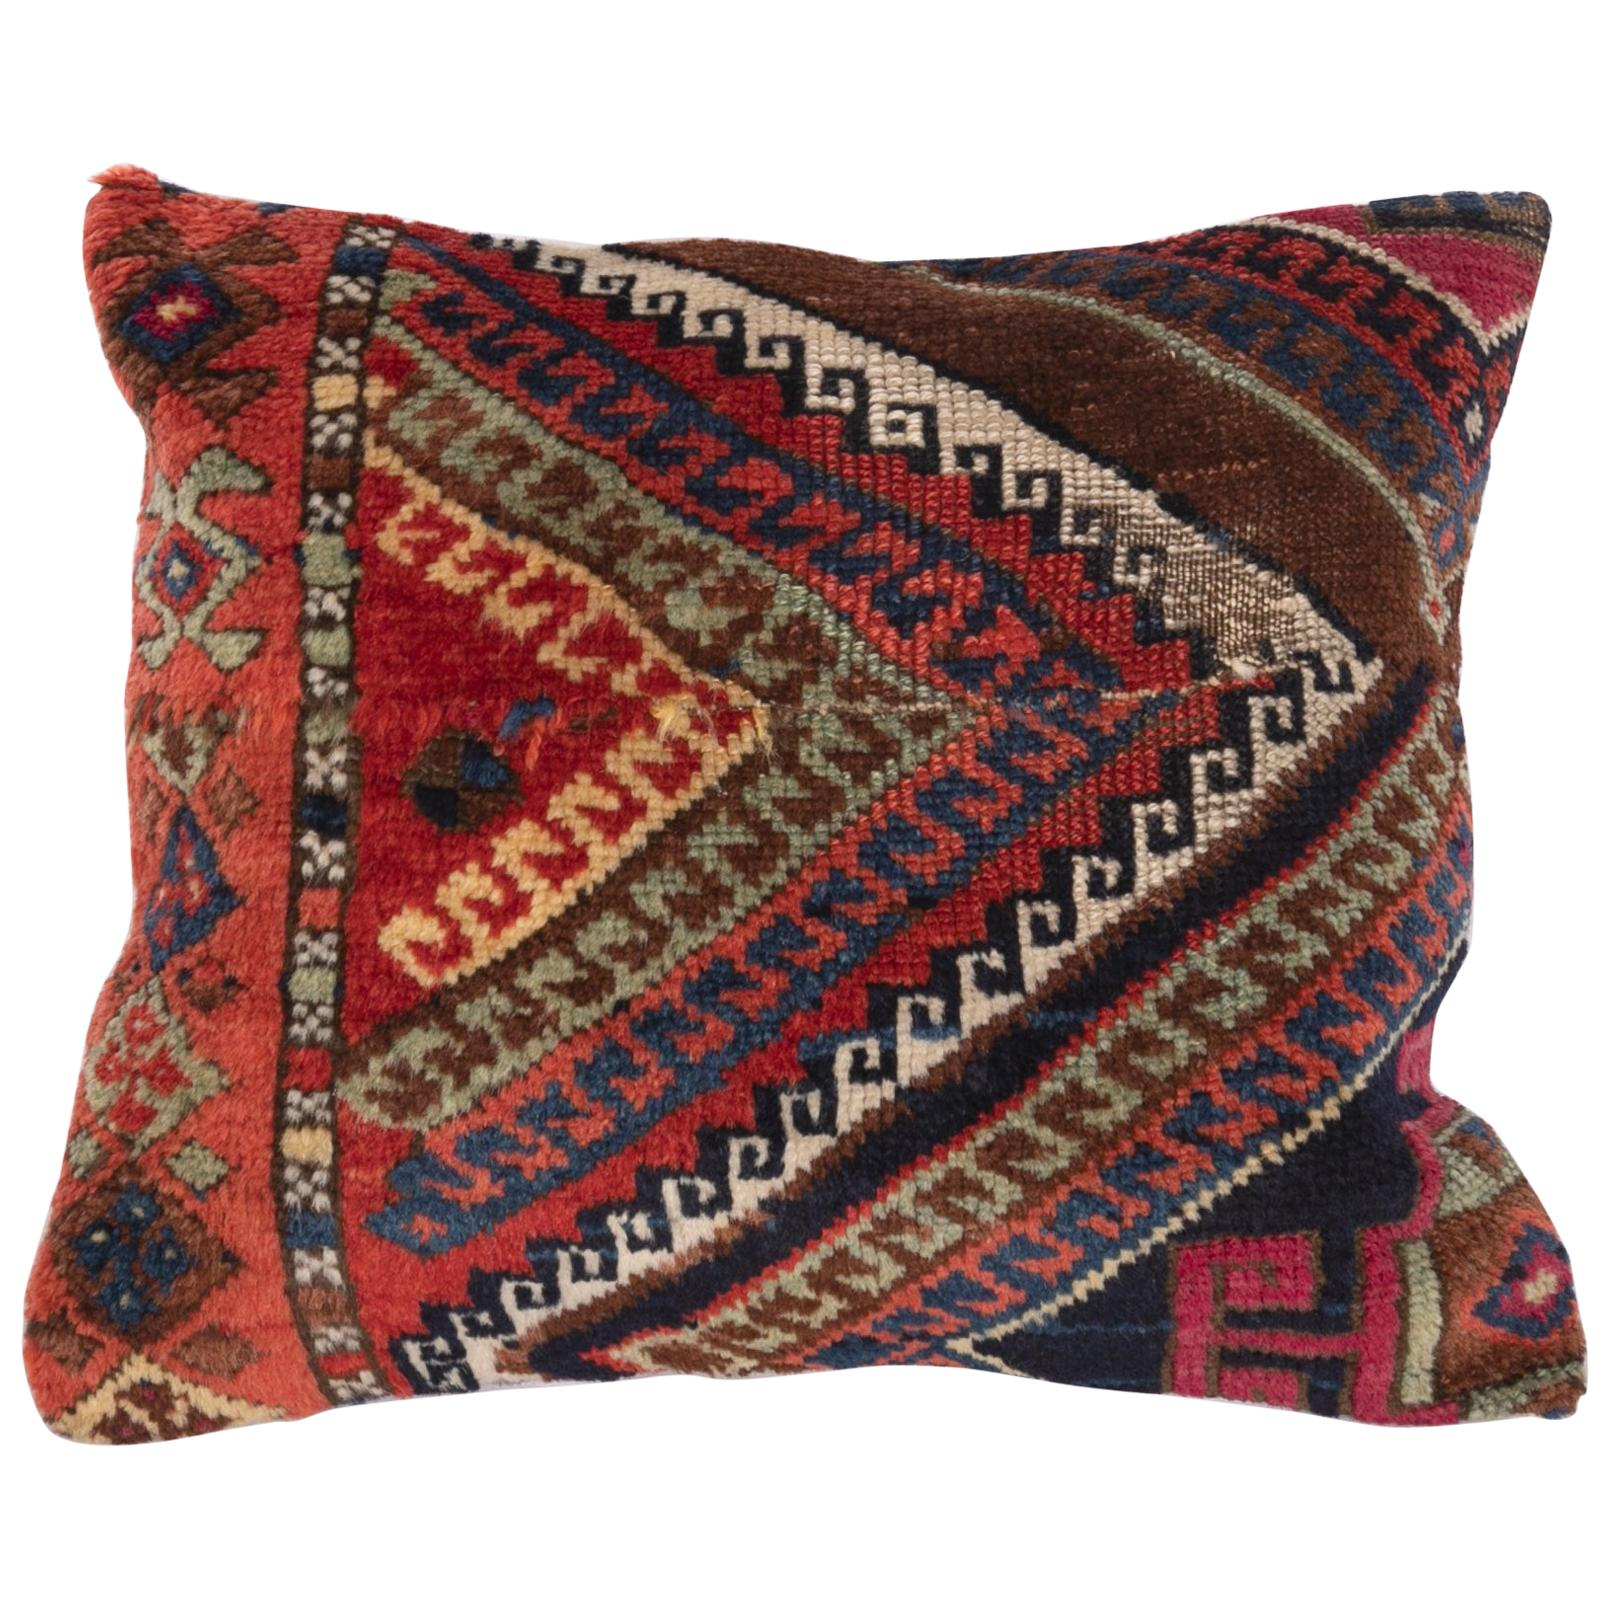 Antique Rug Pillow Case Made from an East Anatolian Rug Fragment, 19th Century